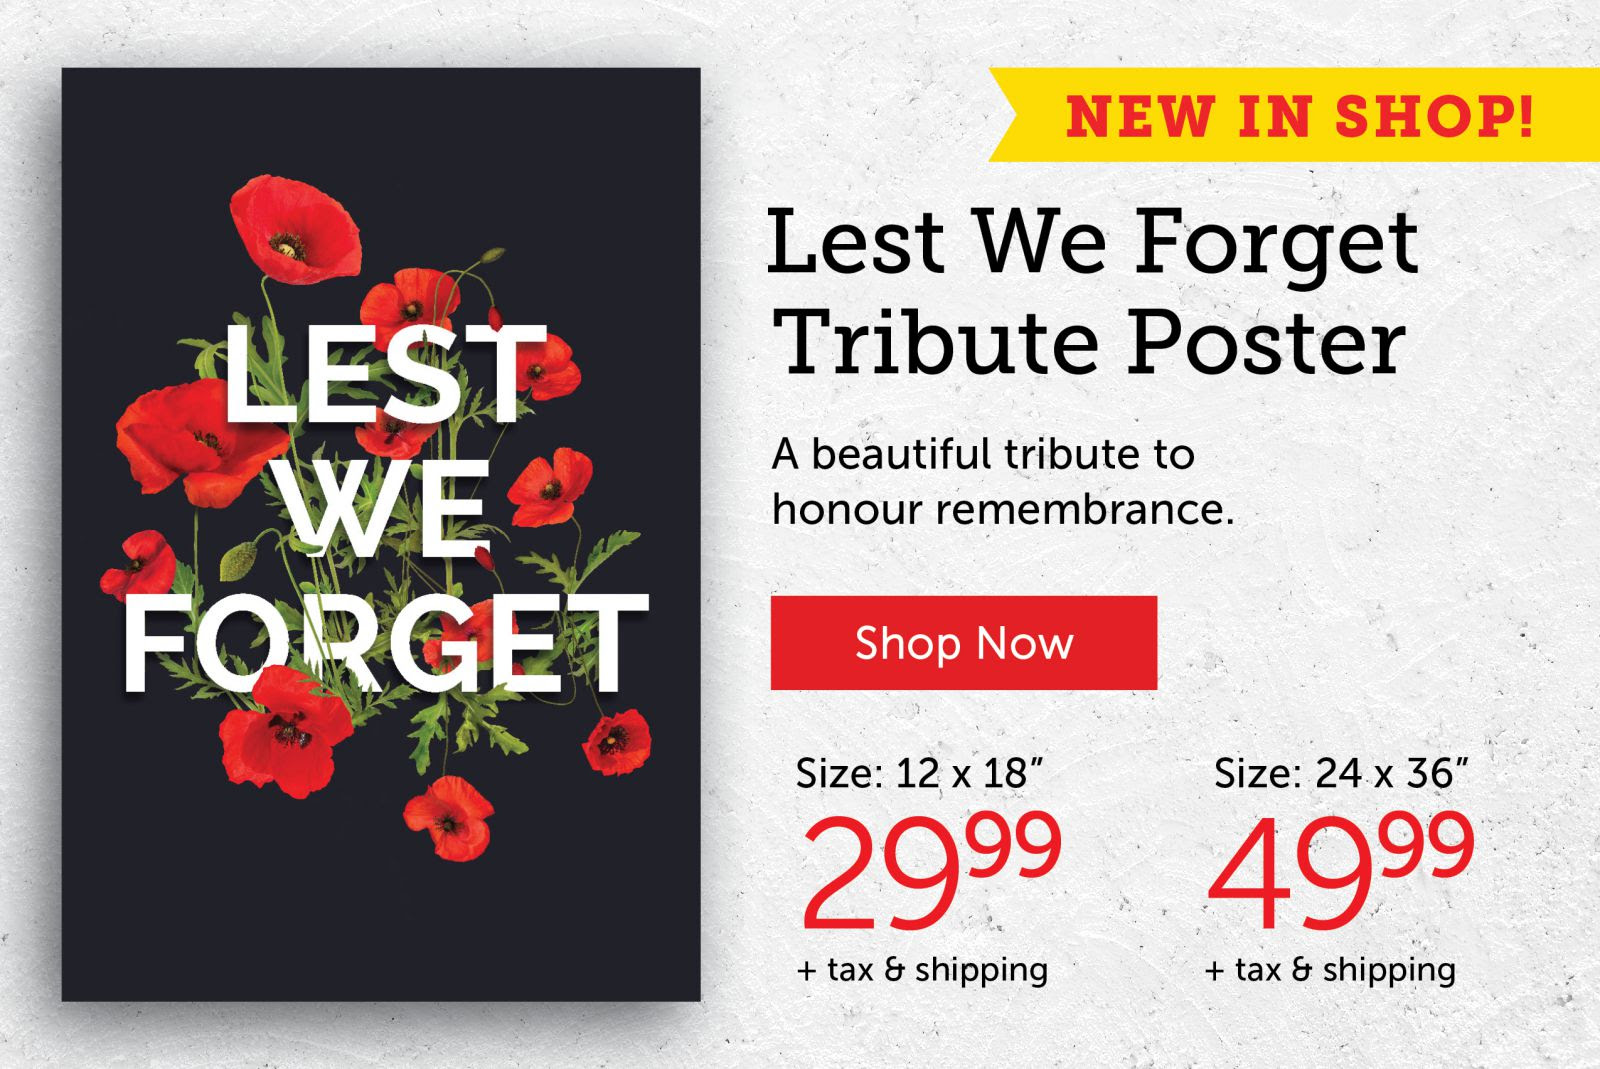 Lest We Forget Tribute Poster!